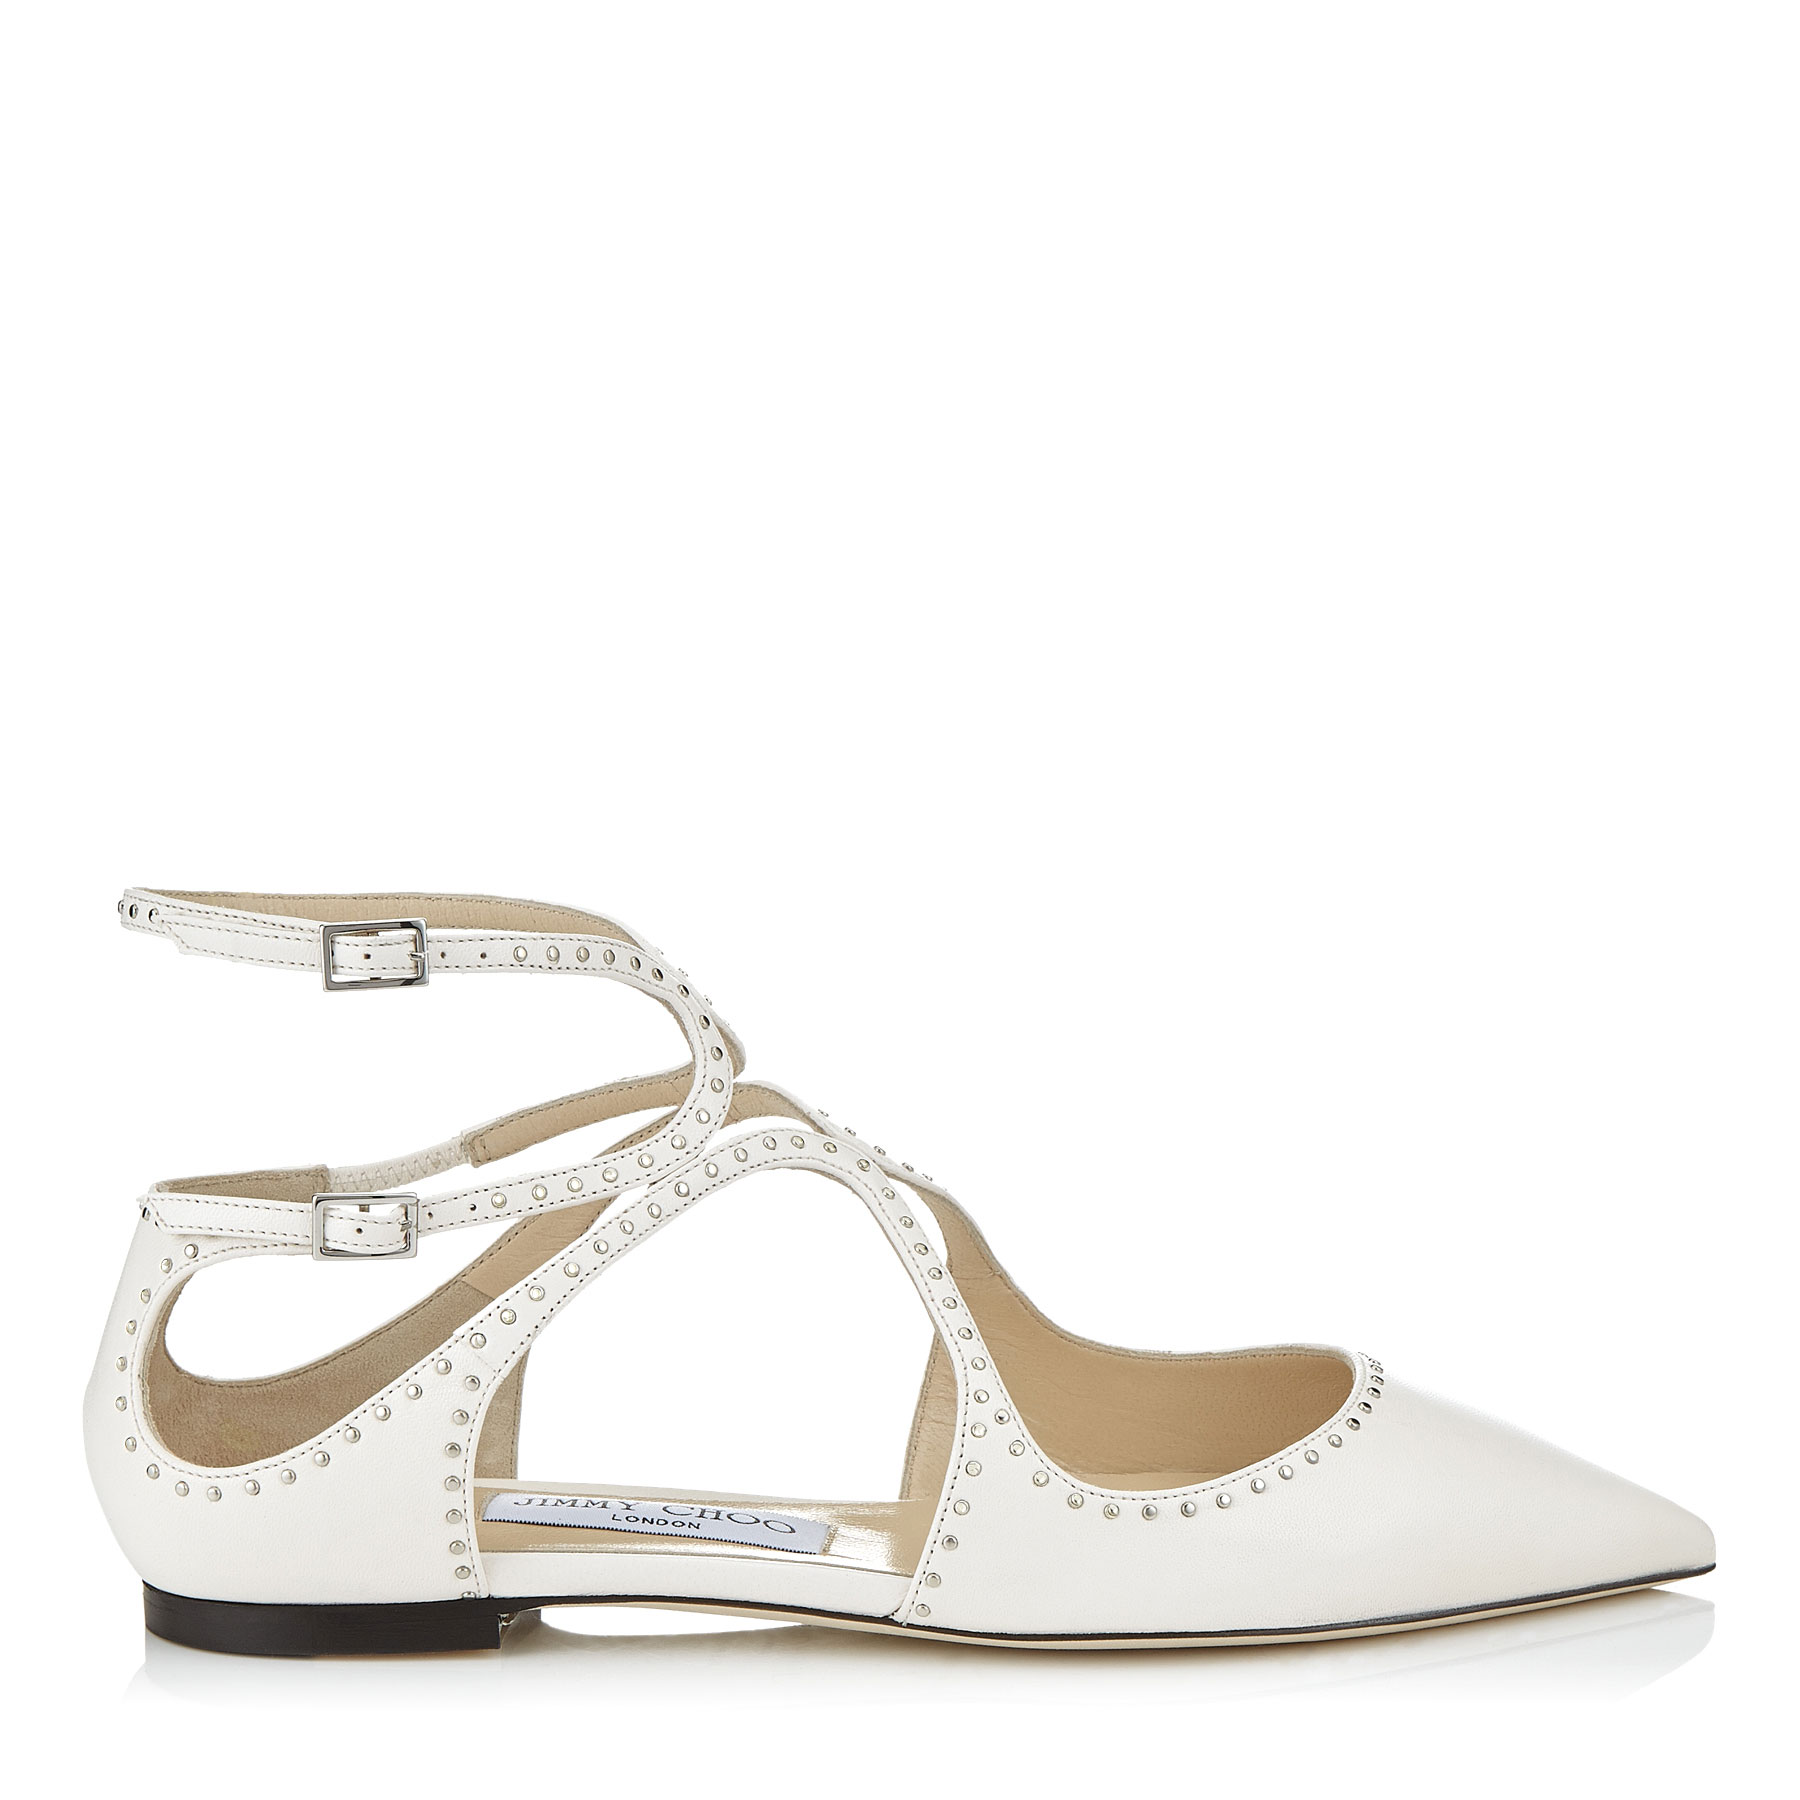 LANCER FLAT Chalk Nappa Leather Pointy Toe Flats with Silver Micro Studs by Jimmy Choo